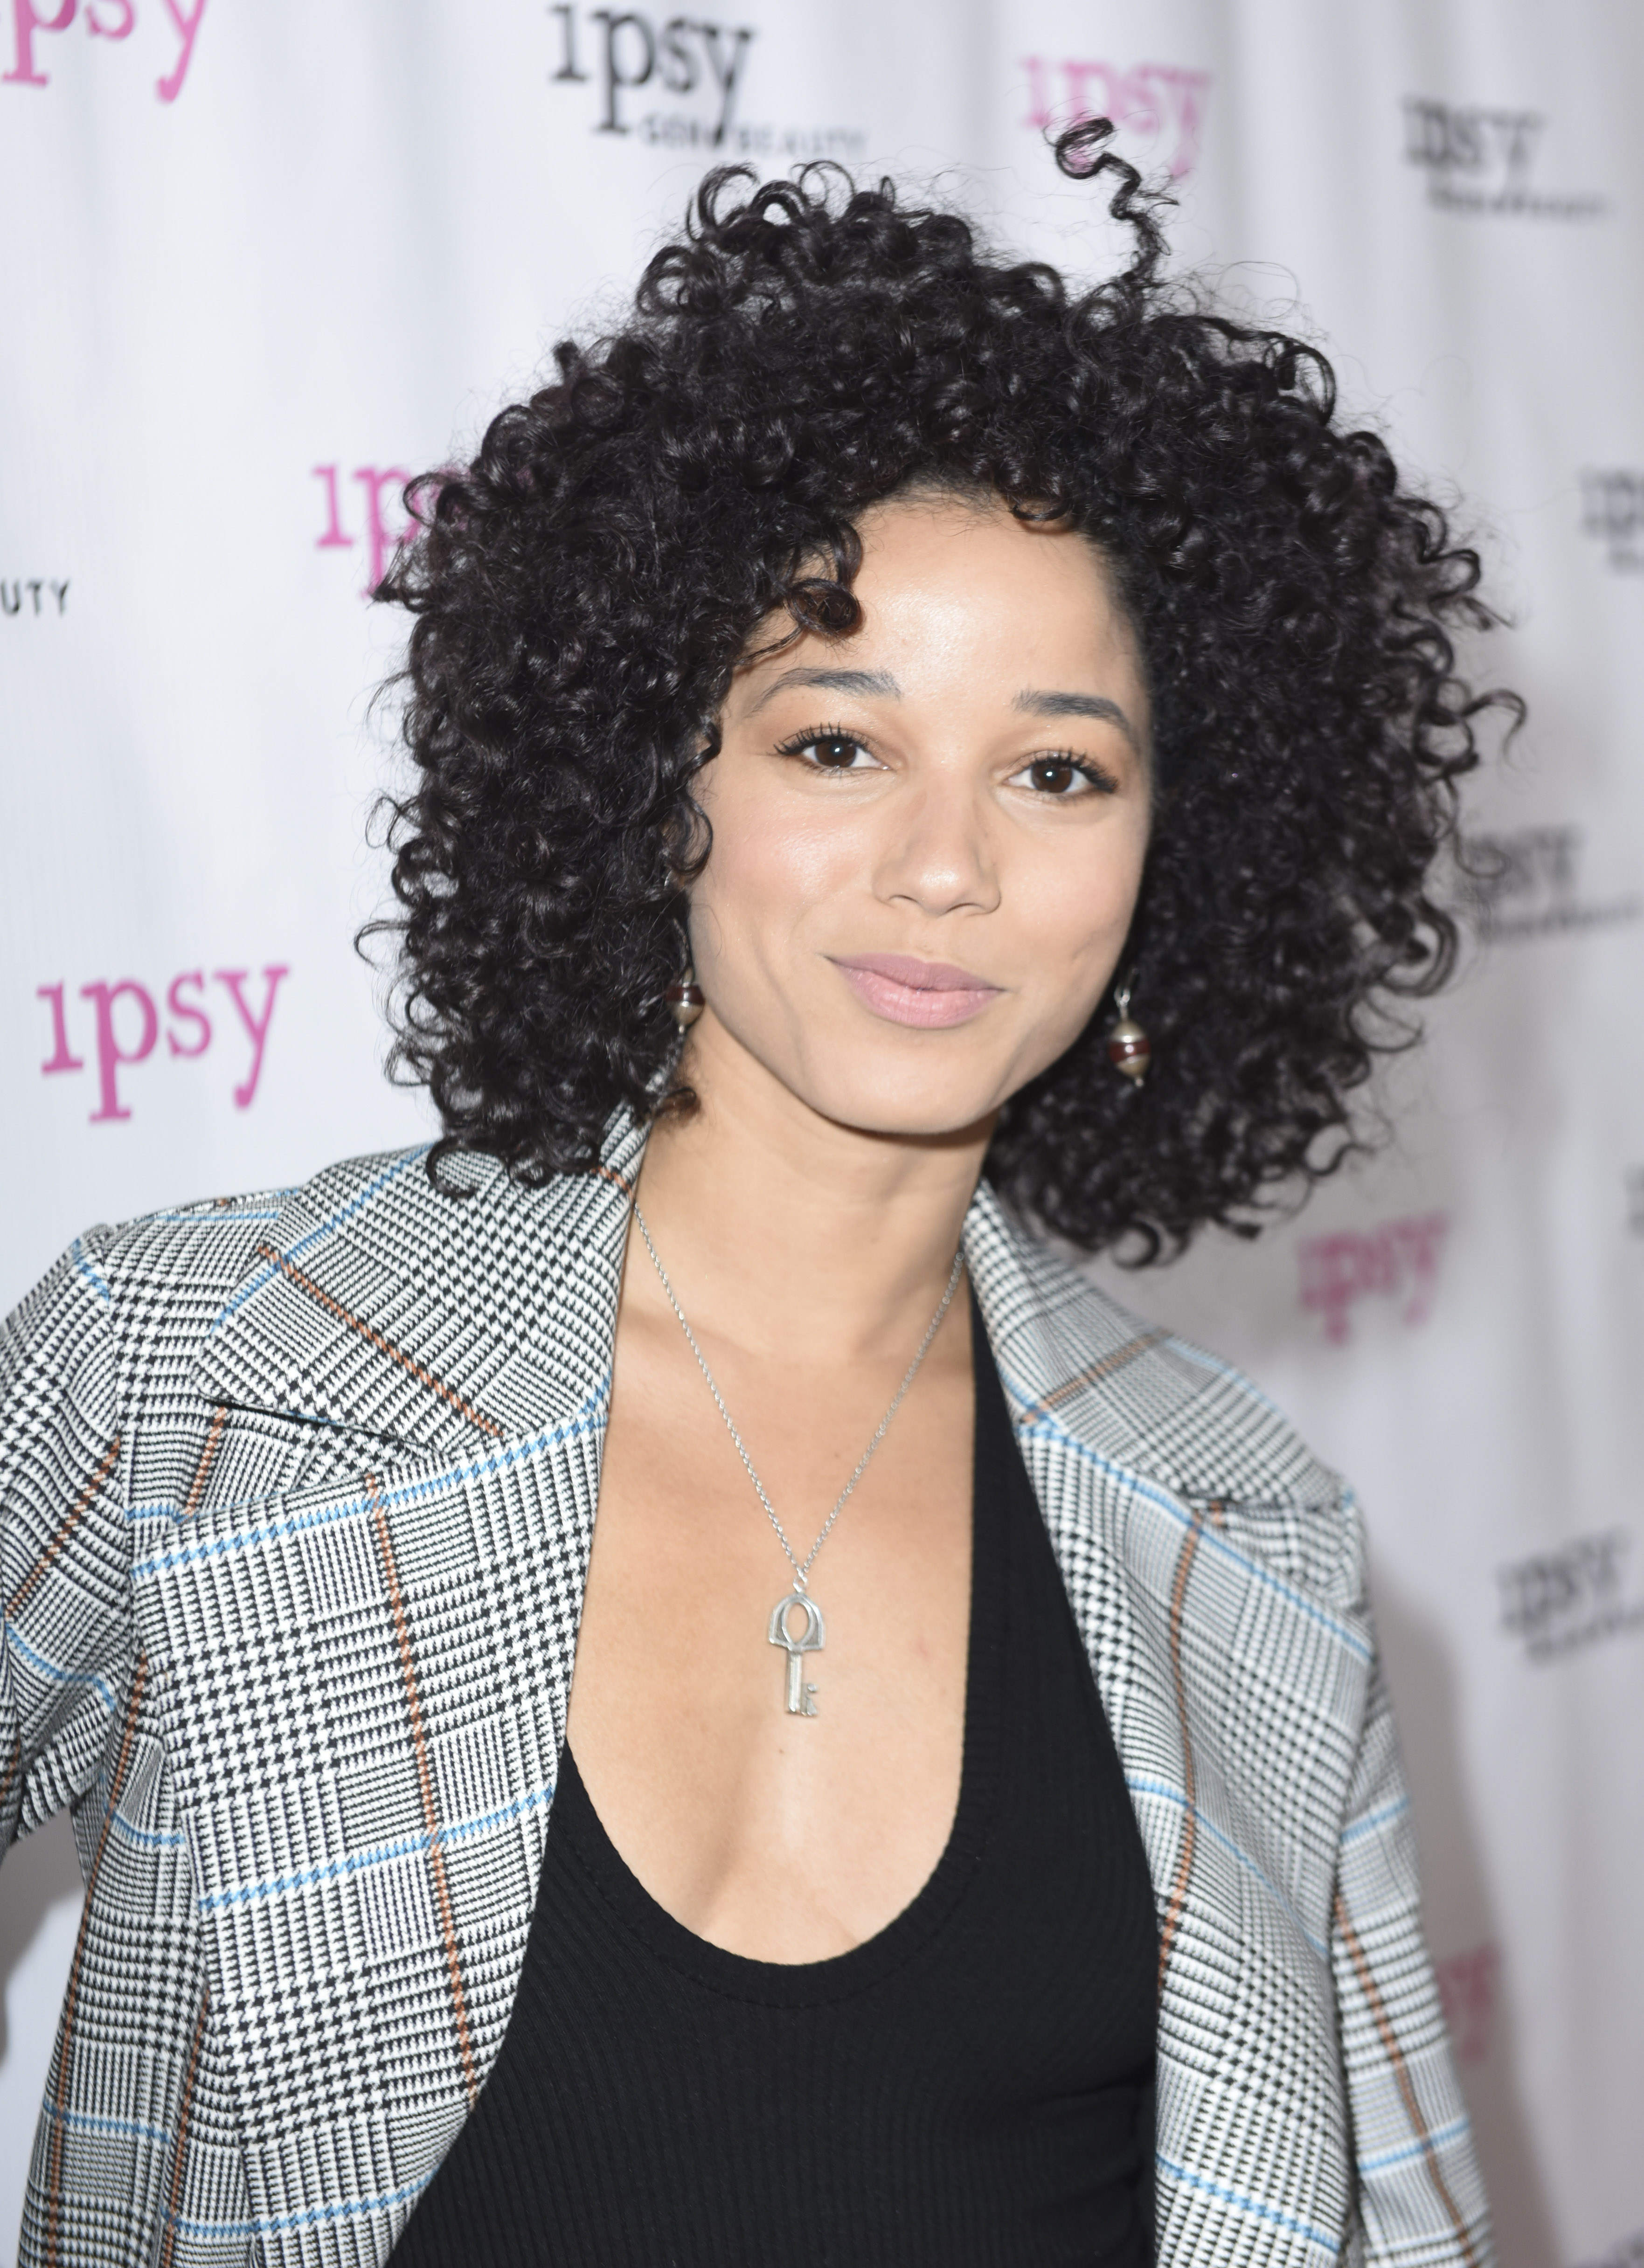 Alisha Wainwright attends ipsy Gen Beauty at the Los Angeles Convention Center on March 24, 2018 in Los Angeles, California.